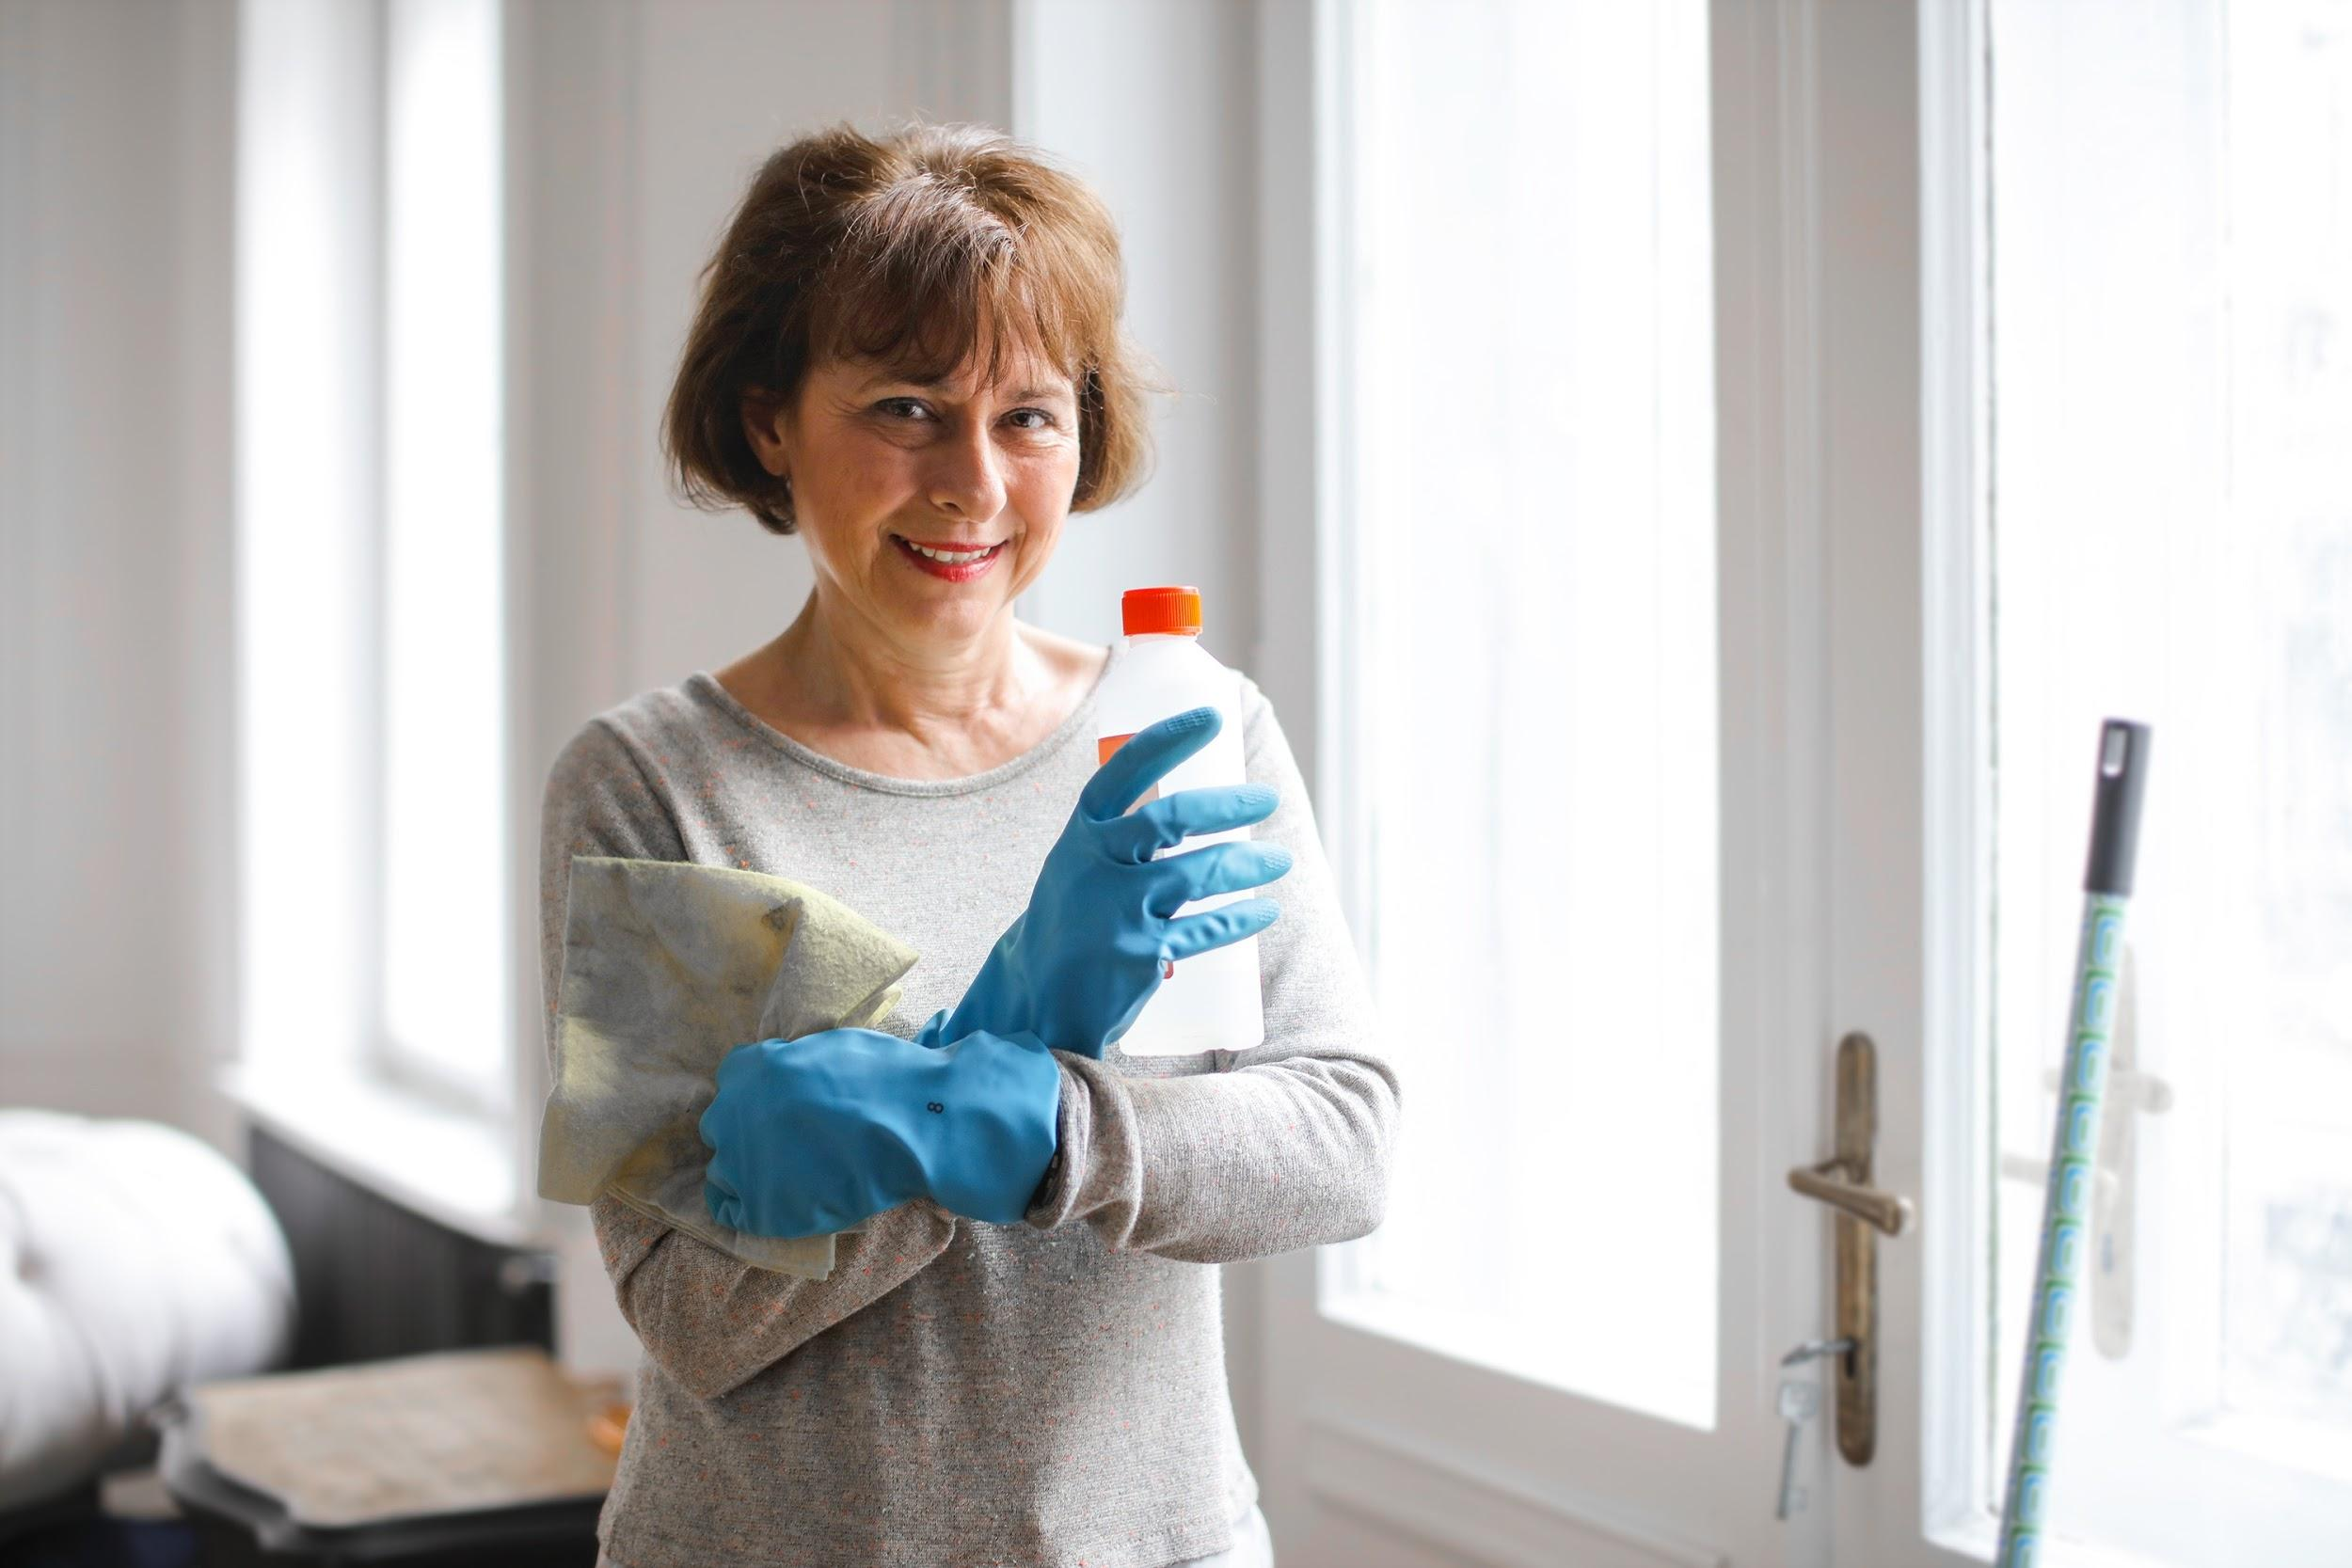 image - How Commercial Cleaning Can Protect You During the COVID-19 Pandemic